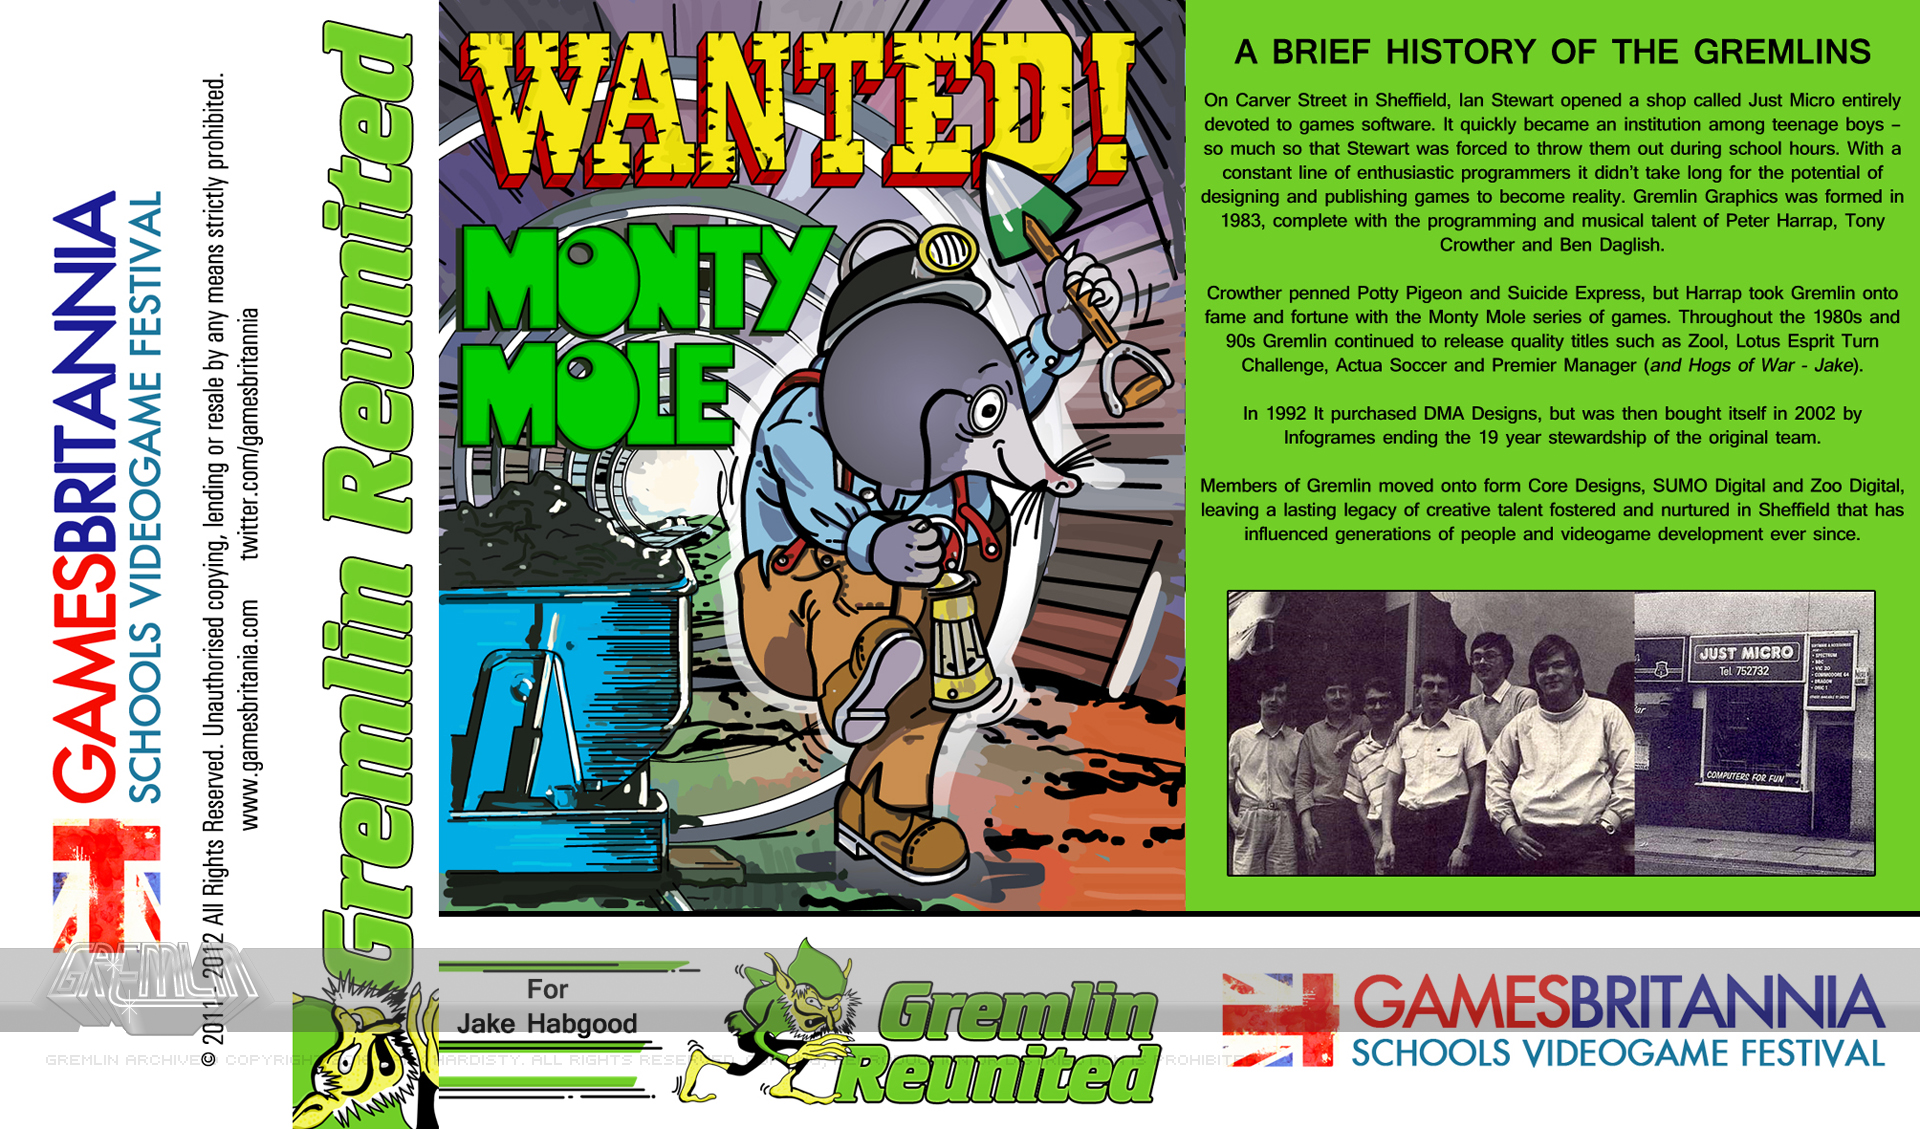 Games Britannia Gremlin Reunited Invitation